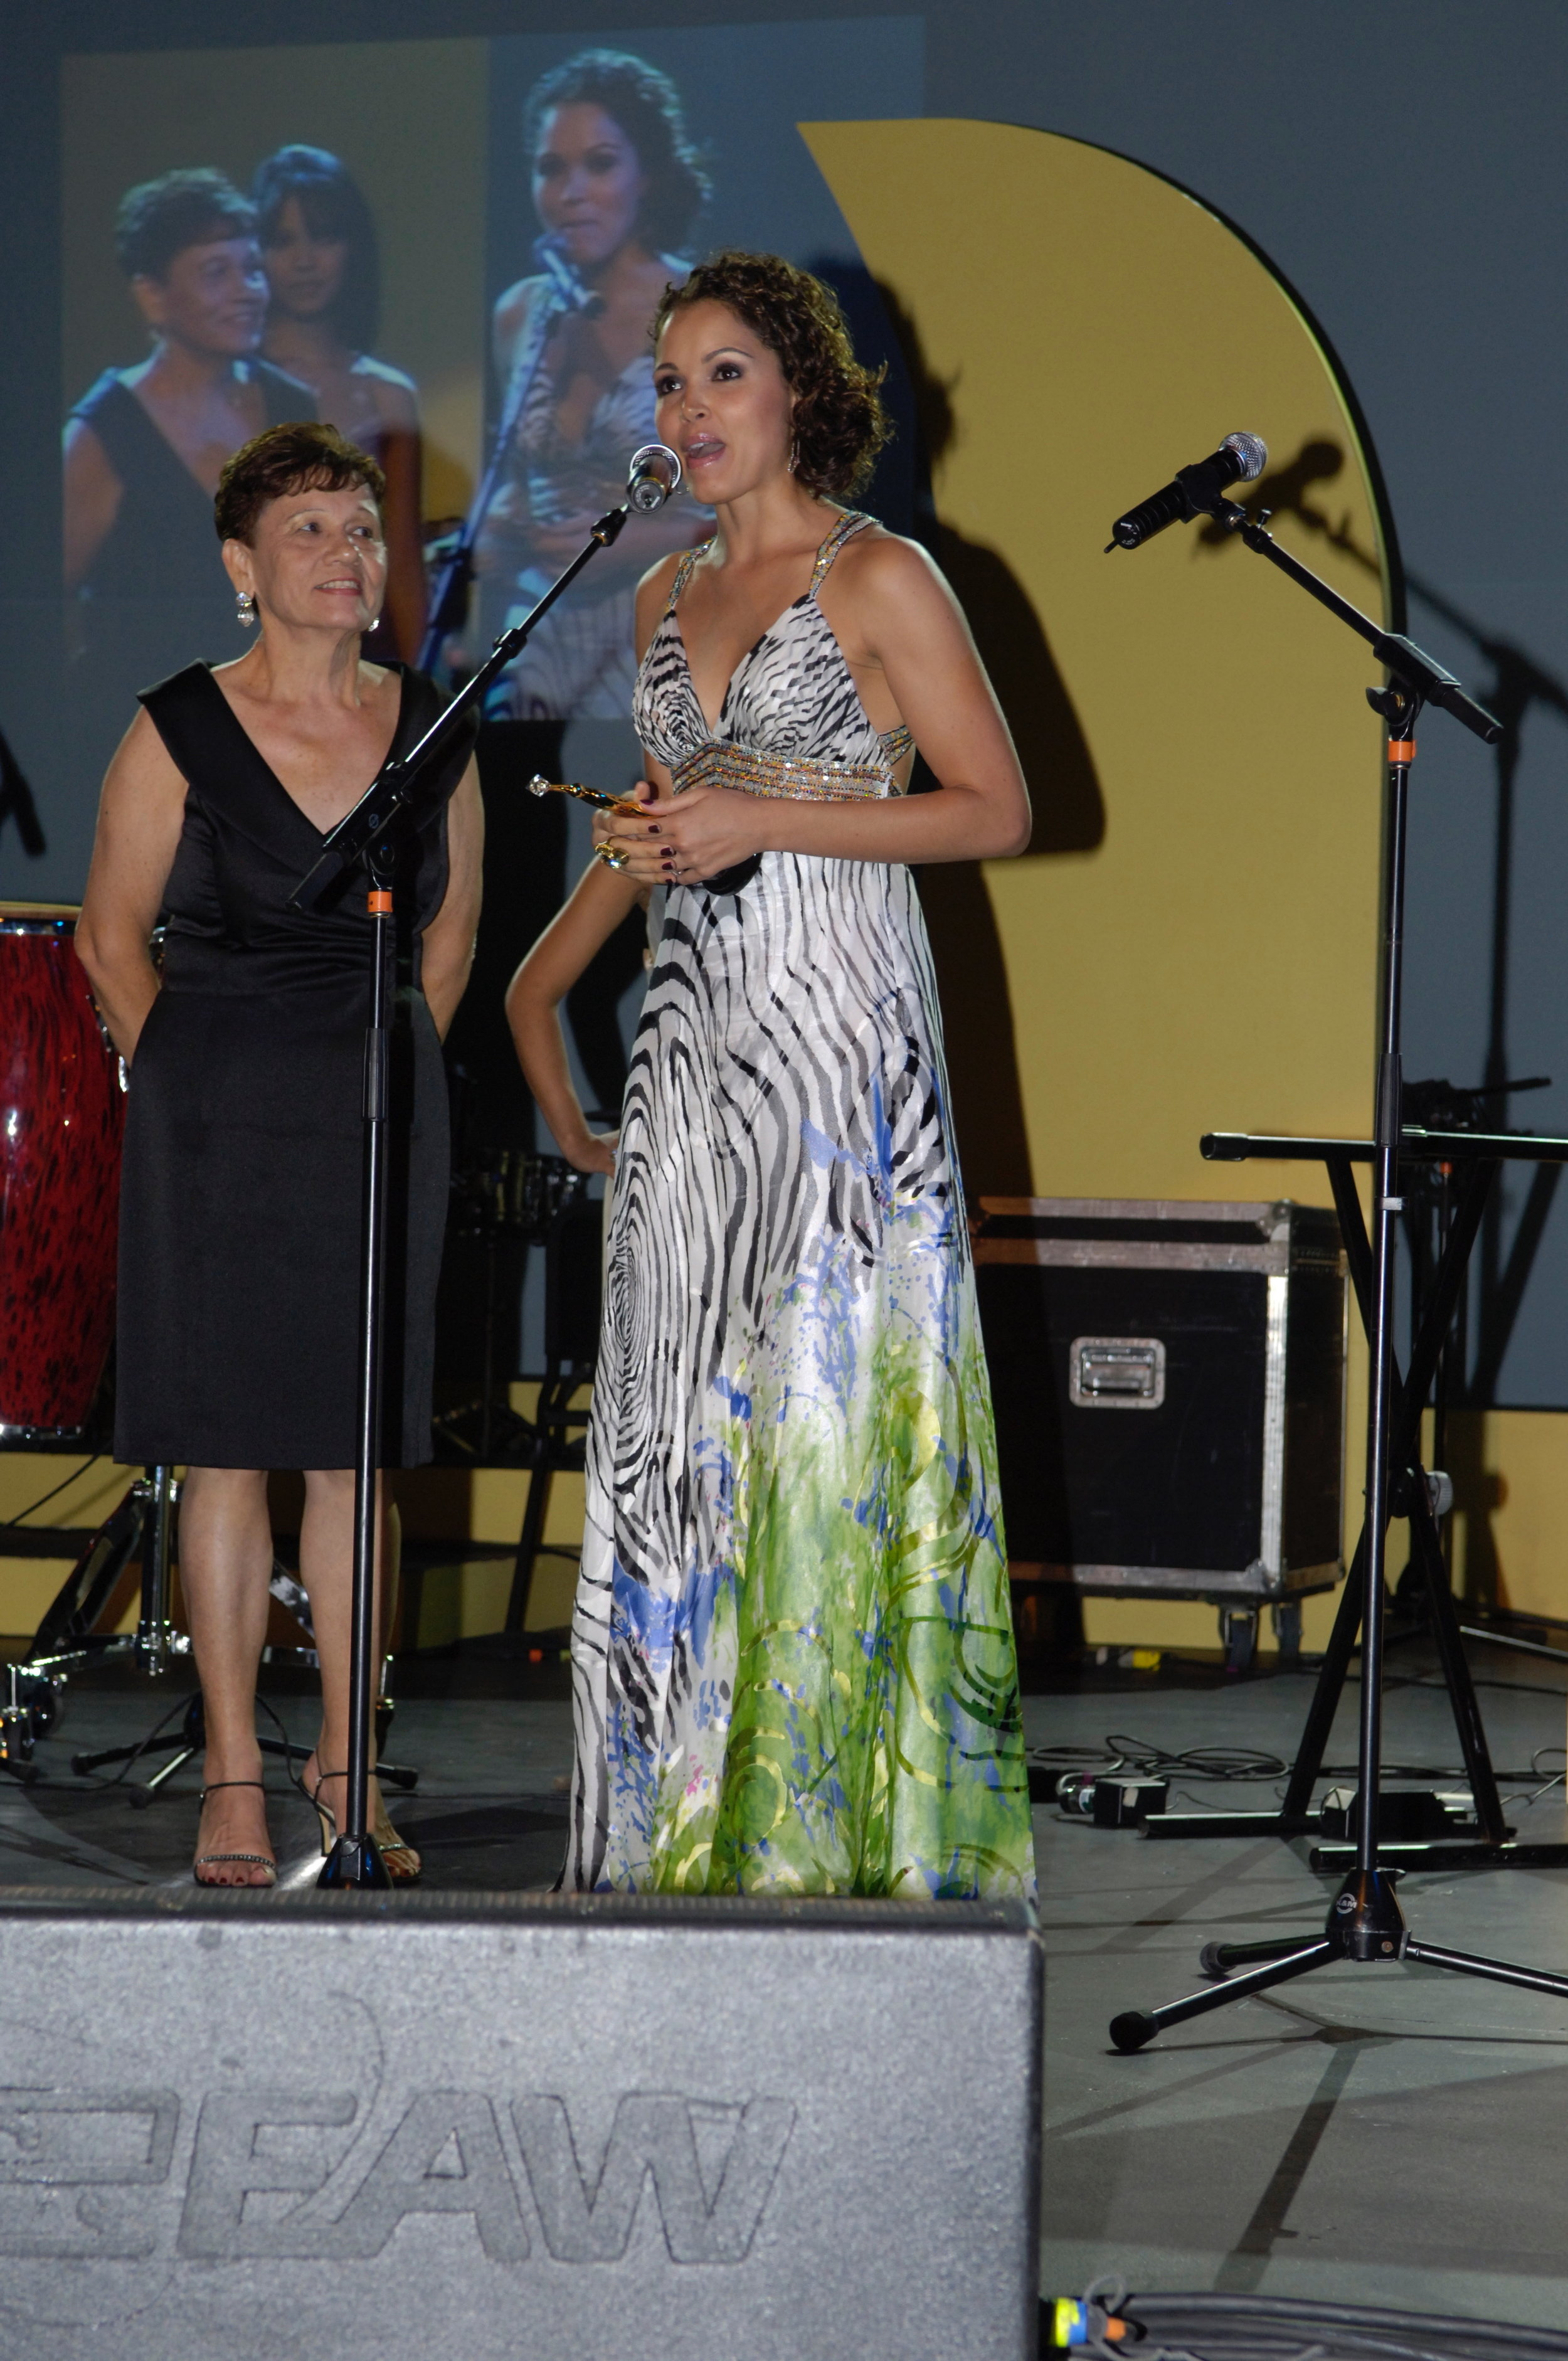 - I received an award at the Hispanic Heritage Awards and brought my mom on stage to dedicate the award to her.